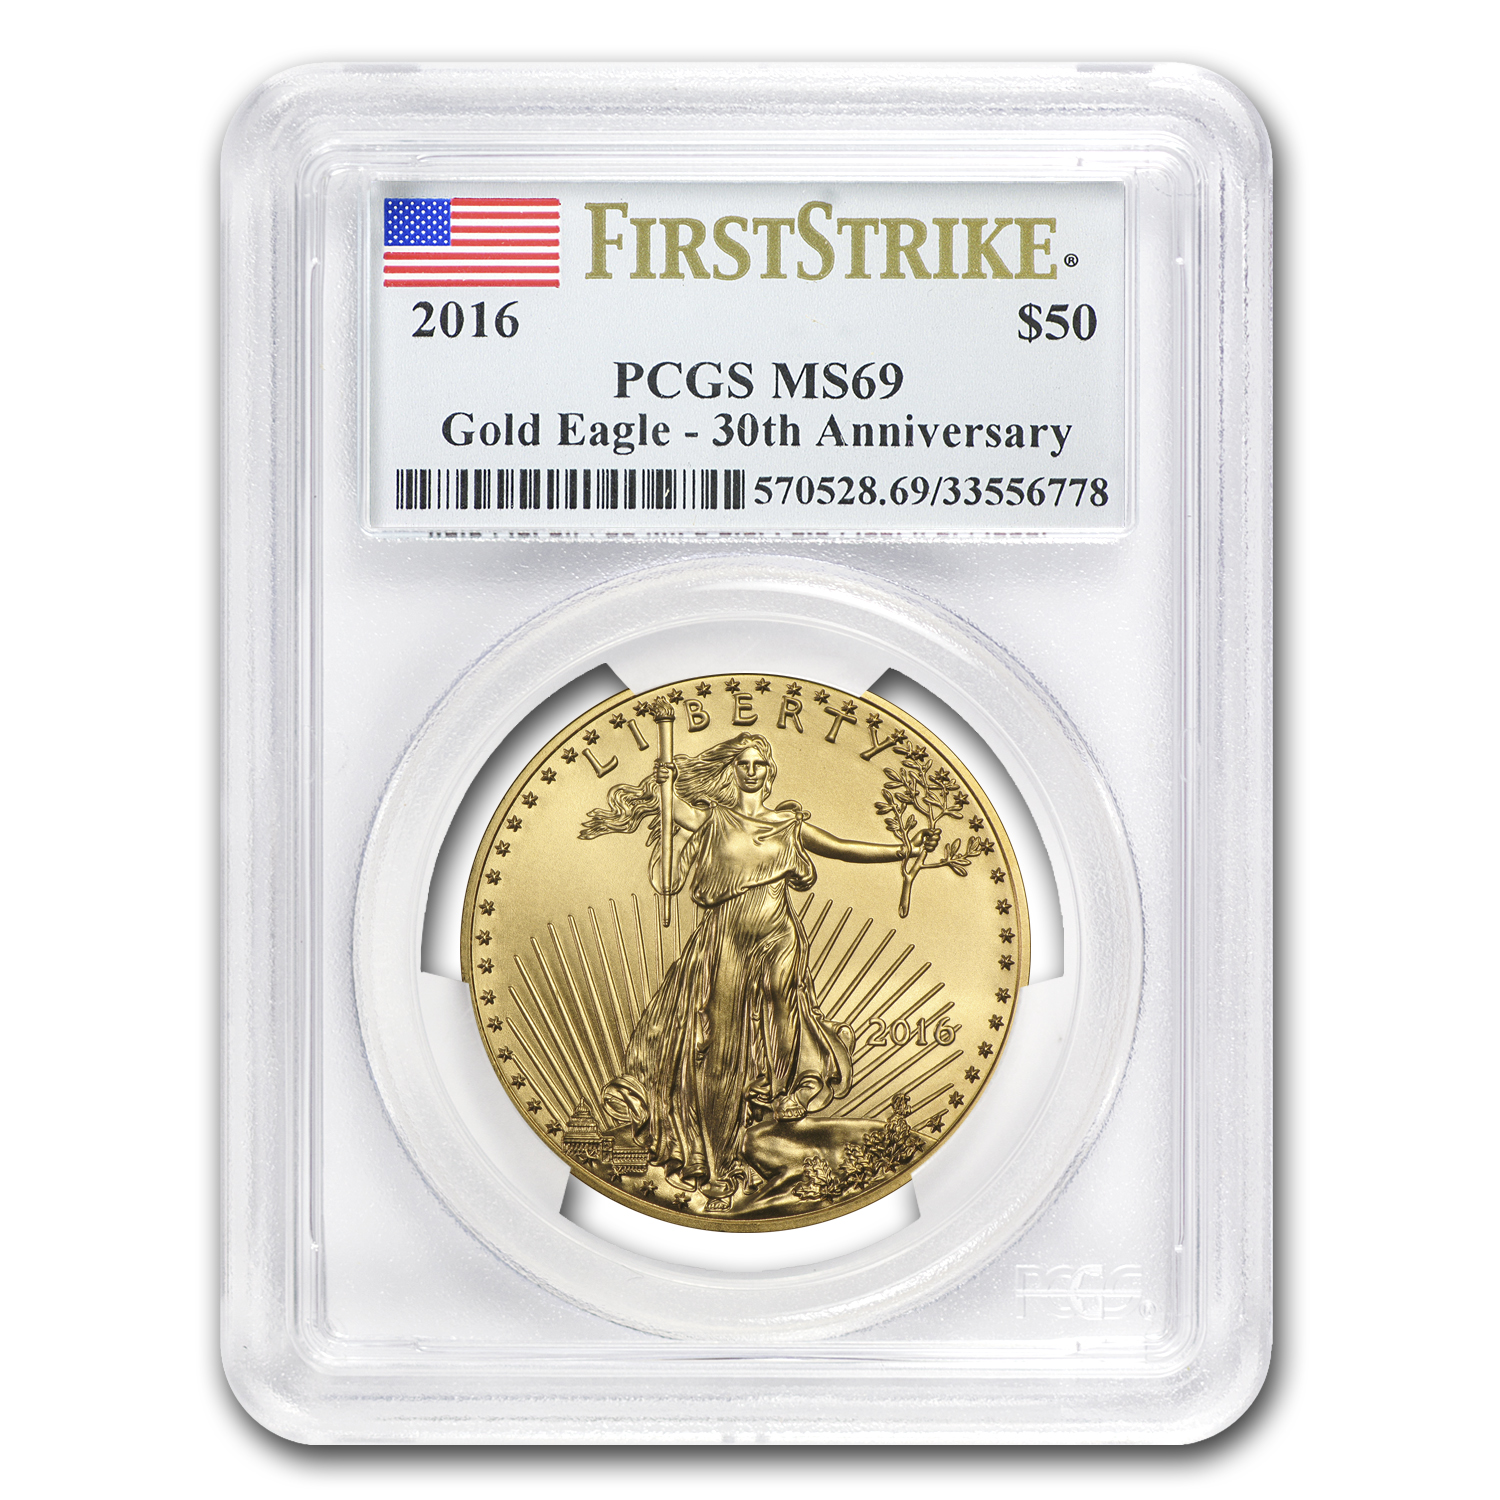 2016 1 oz Gold American Eagle MS-69 PCGS (FS)